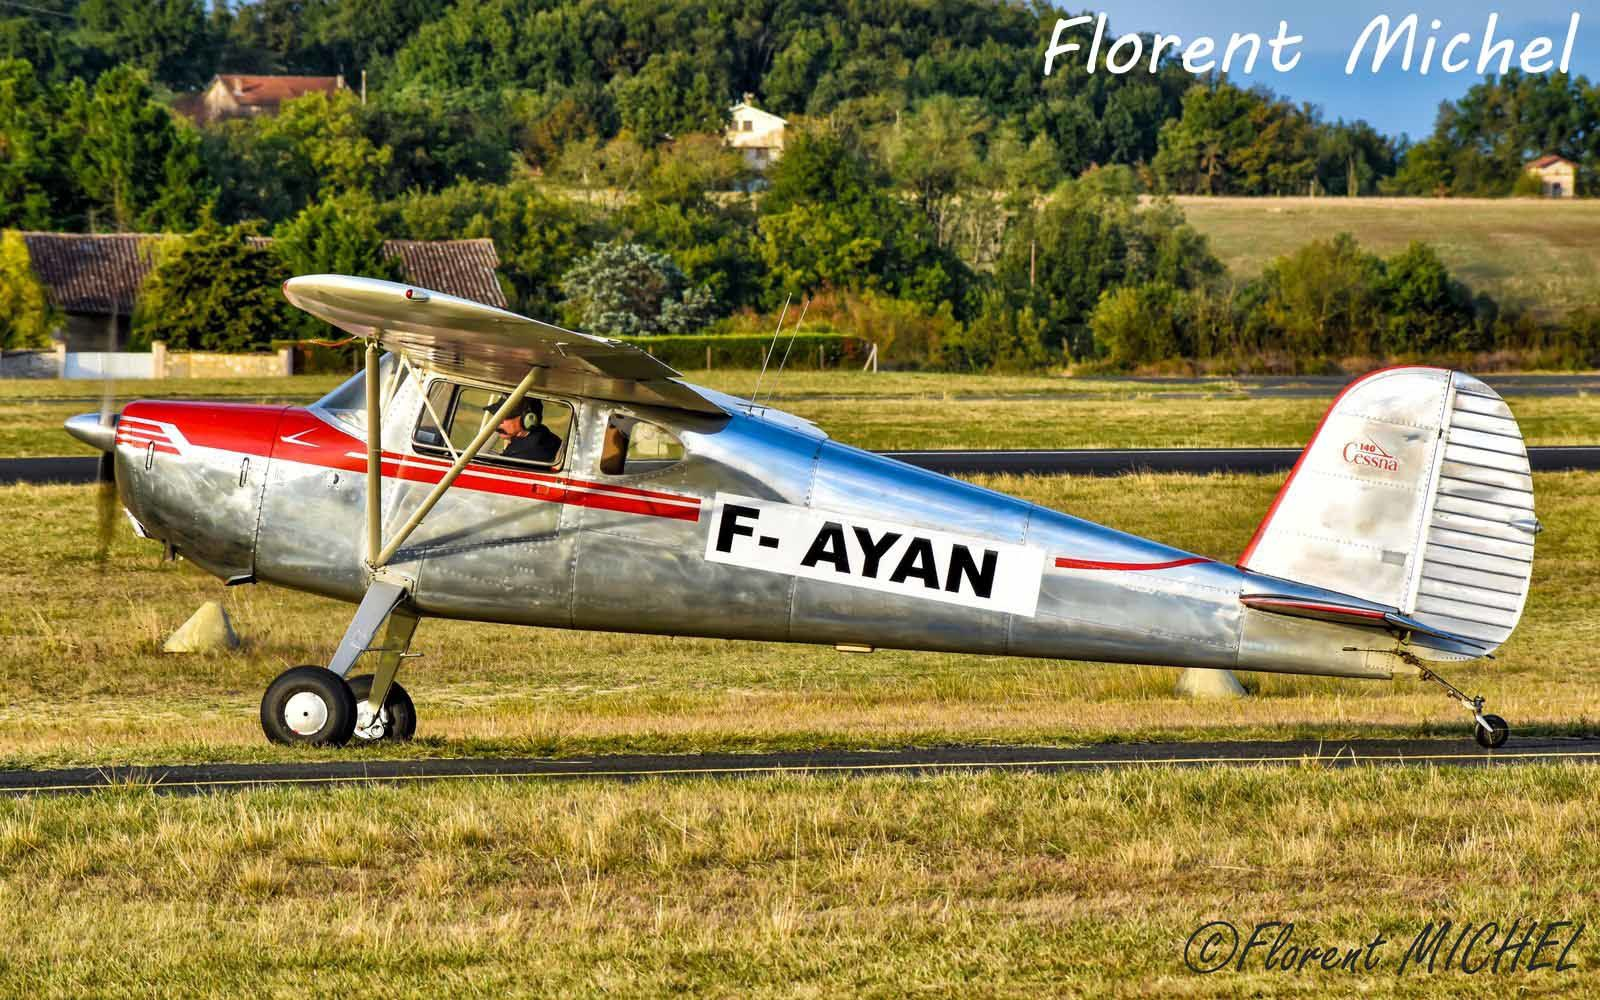 Le Cessna 140 F-AYAN, ex PH-COA (Photo: Florent Michel)